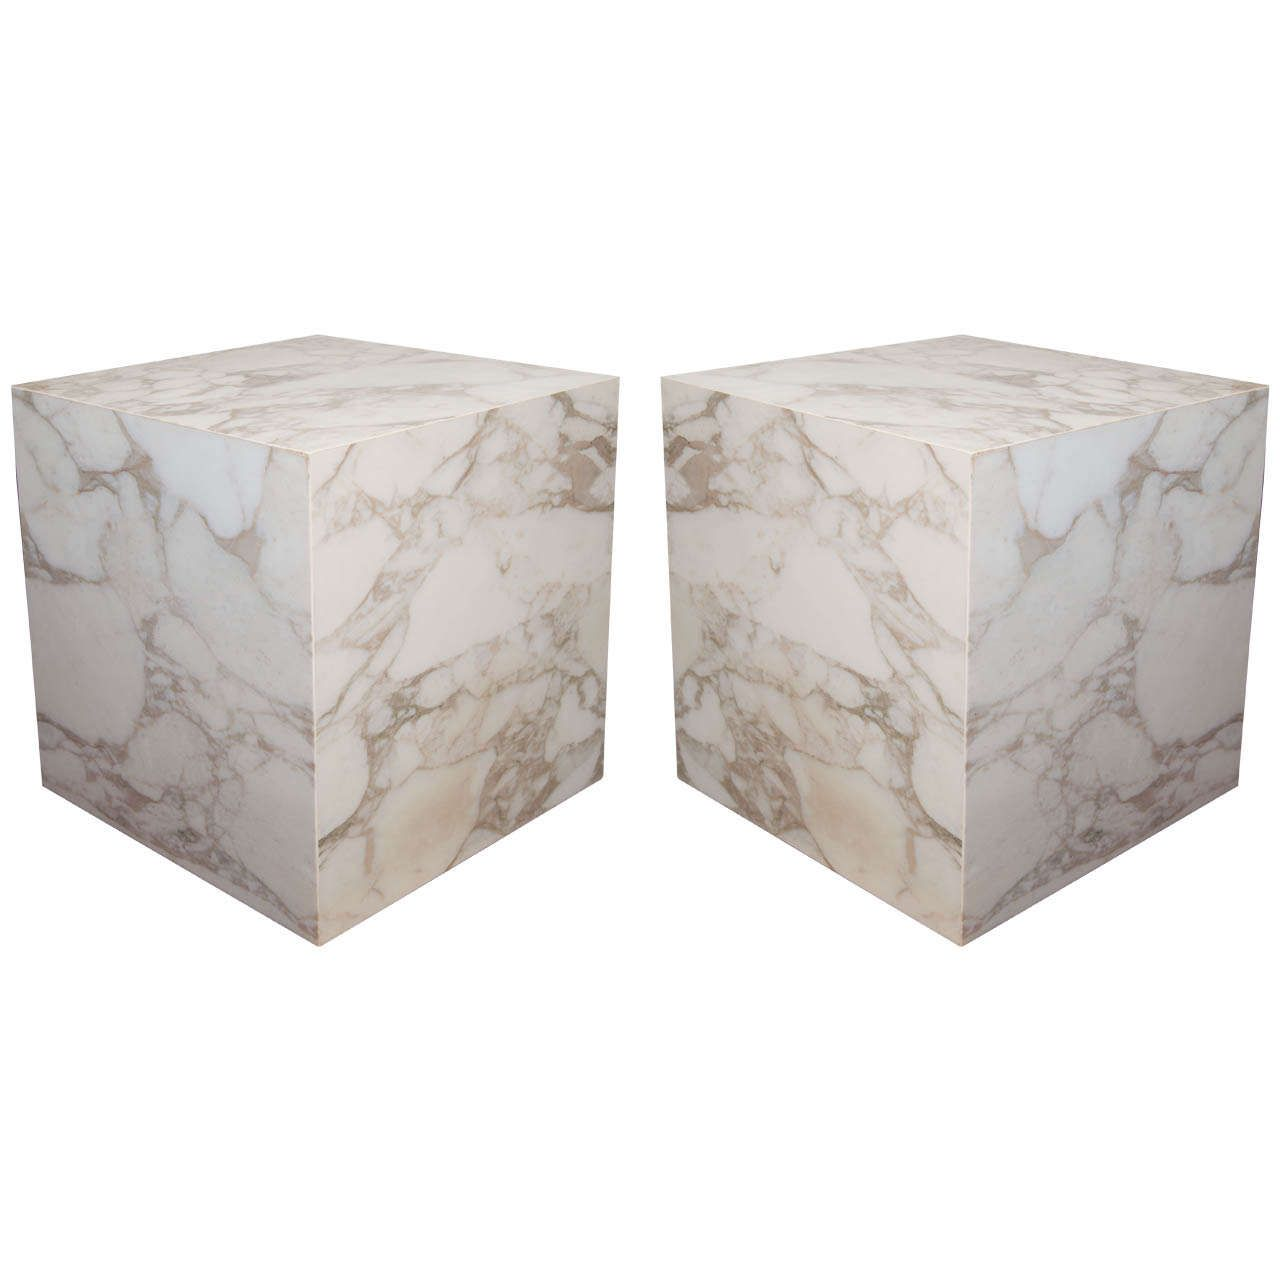 Marble Slab Logo - A Mid Century Pair of Cube Form Solid Marble Slab End or Side Tables ...